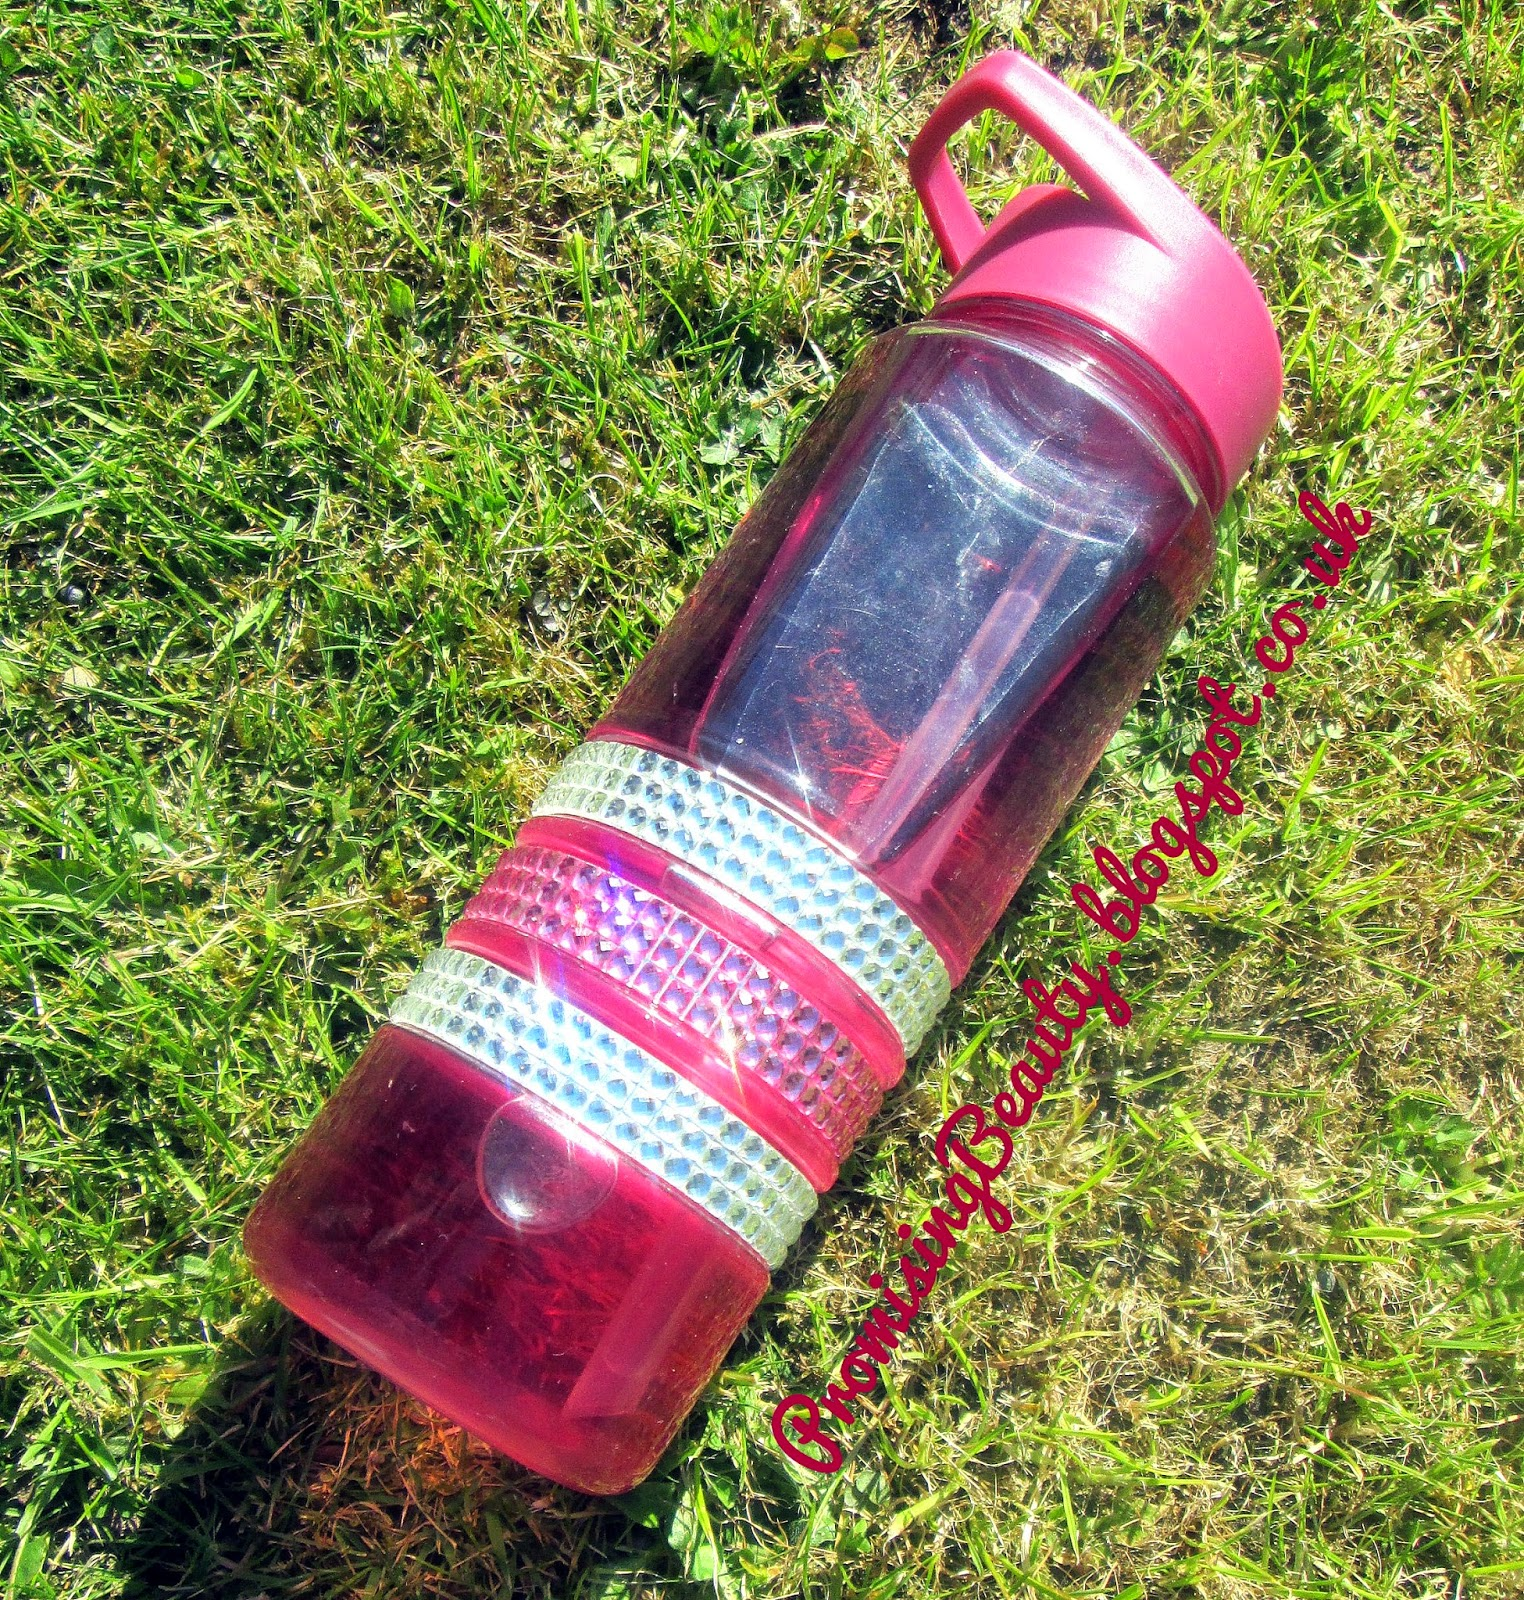 Water bottle with sparkly jewels, purple and pink. Filled with squash outside on the grass. 3 litres of water.